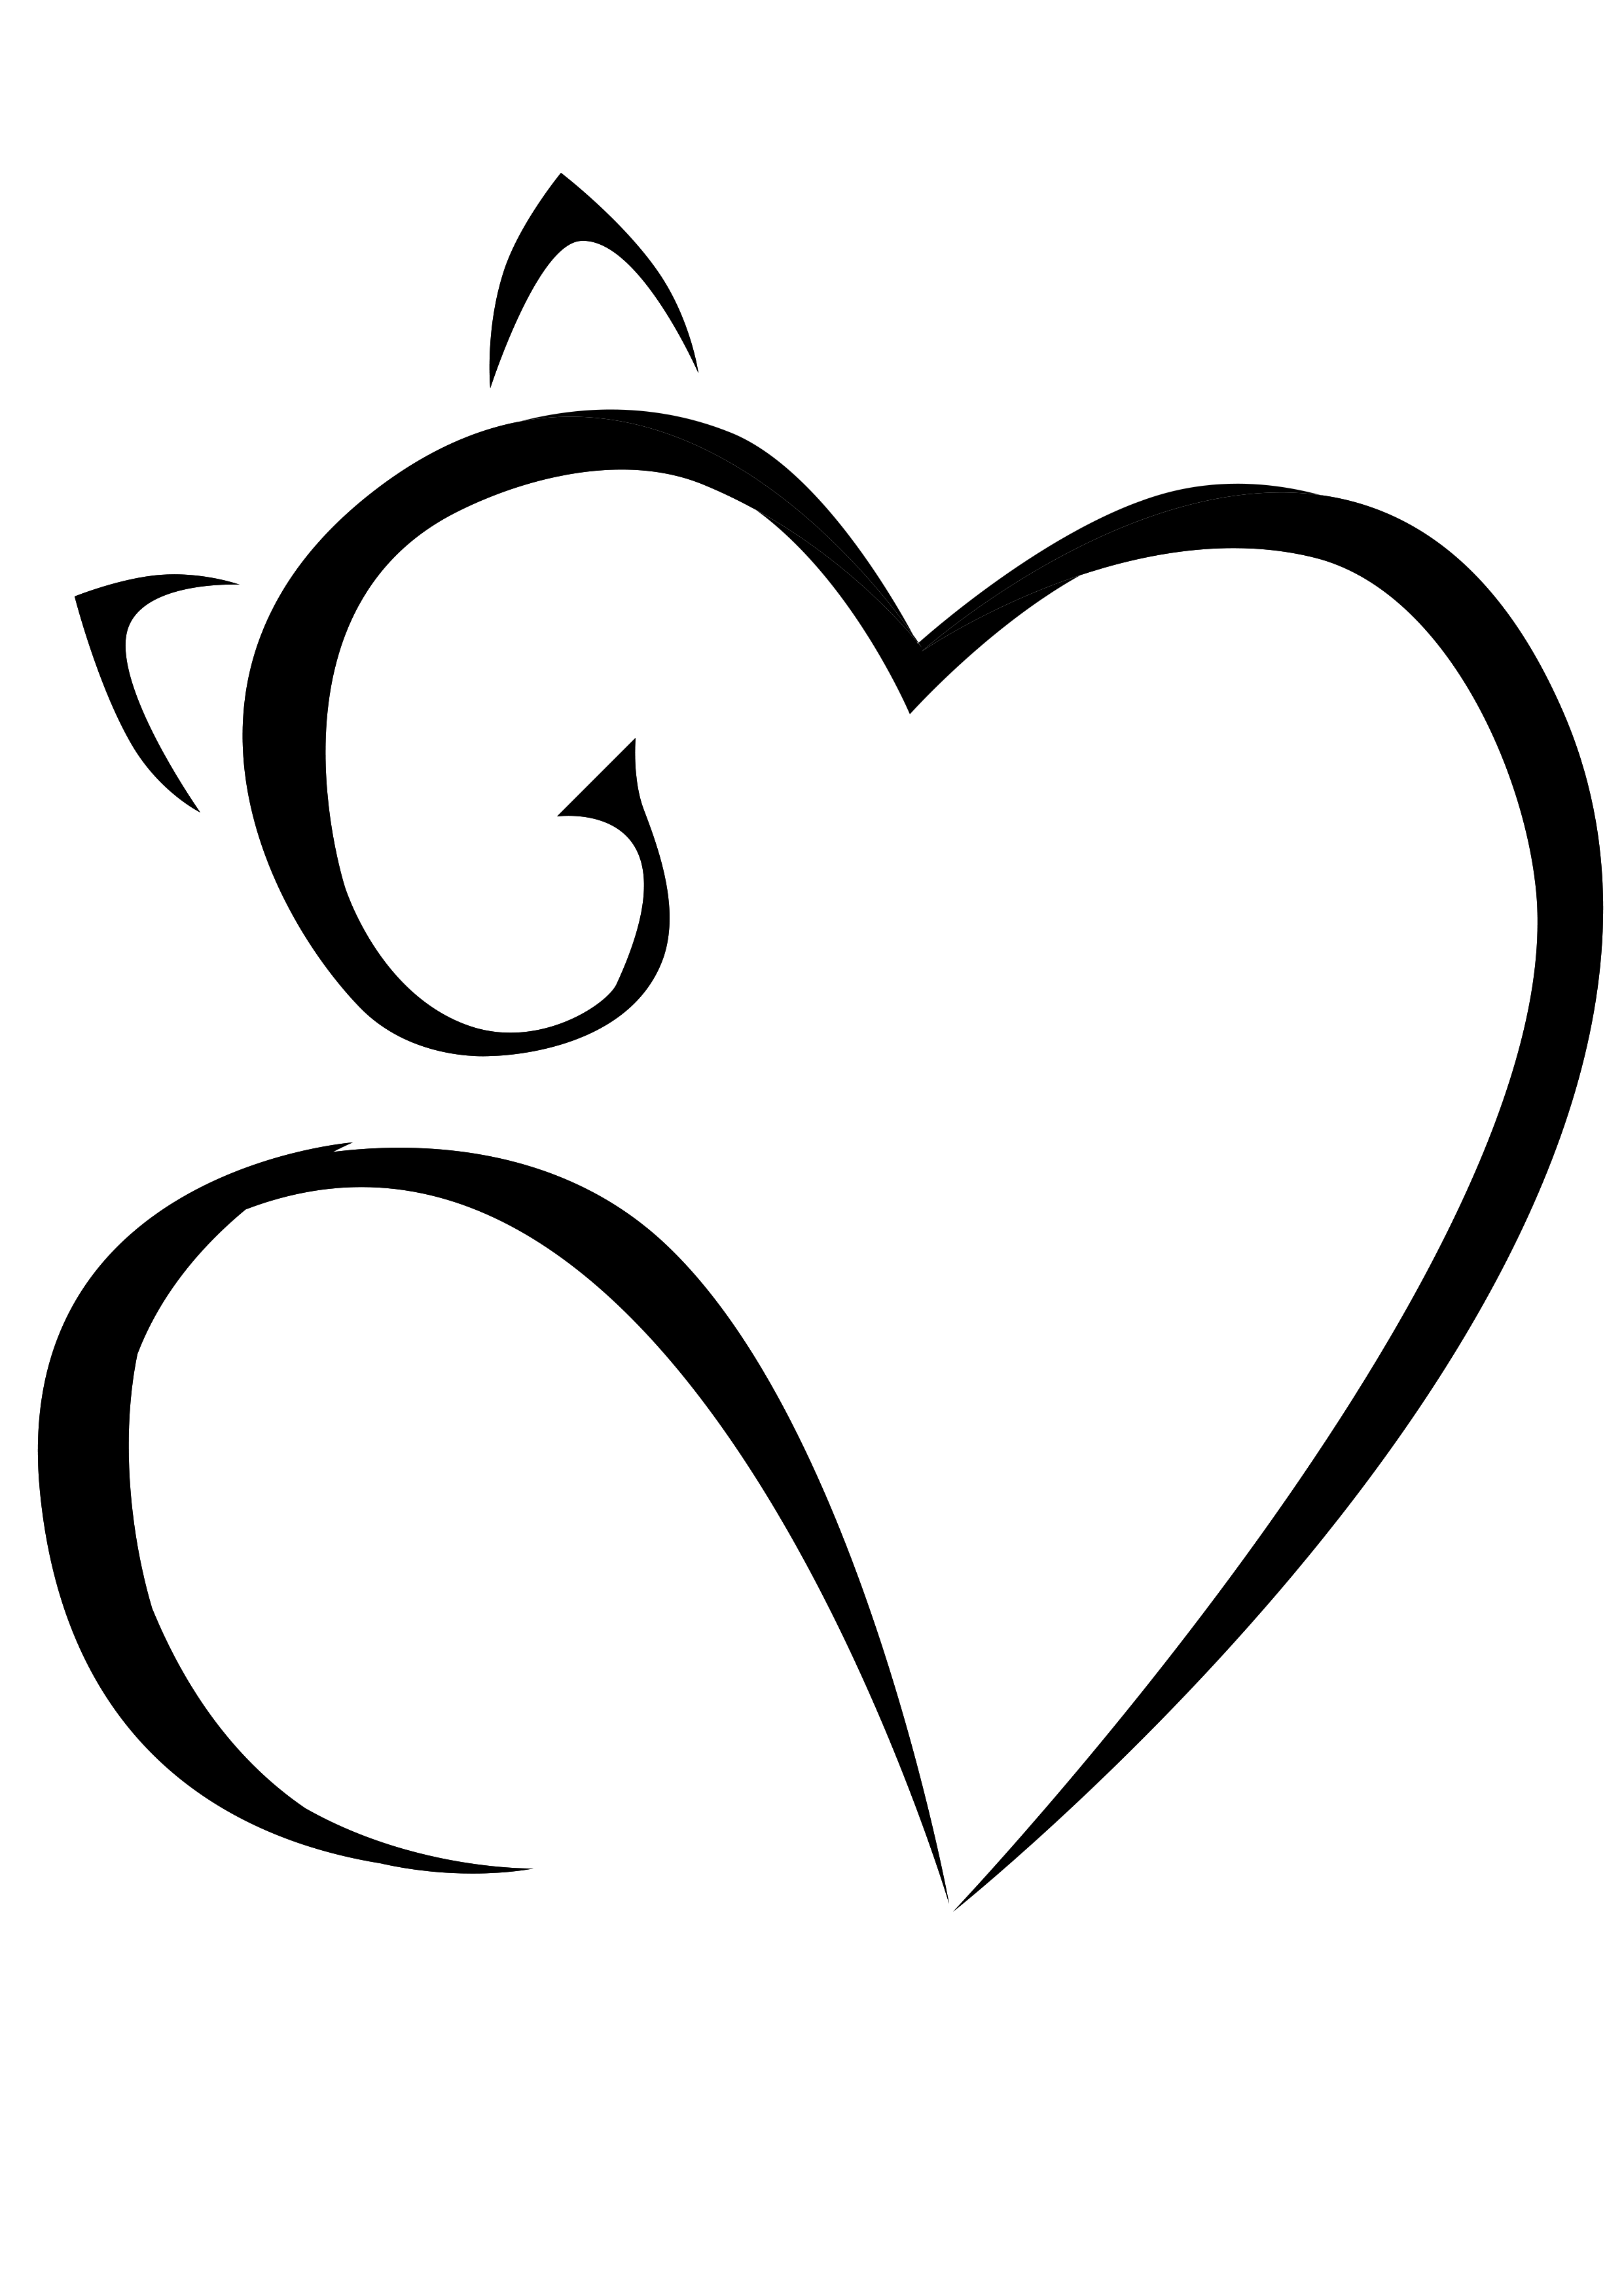 2481x3507 Cat Line Drawing With Heart Coeur Tattoos, Cat Tattoo, Drawings